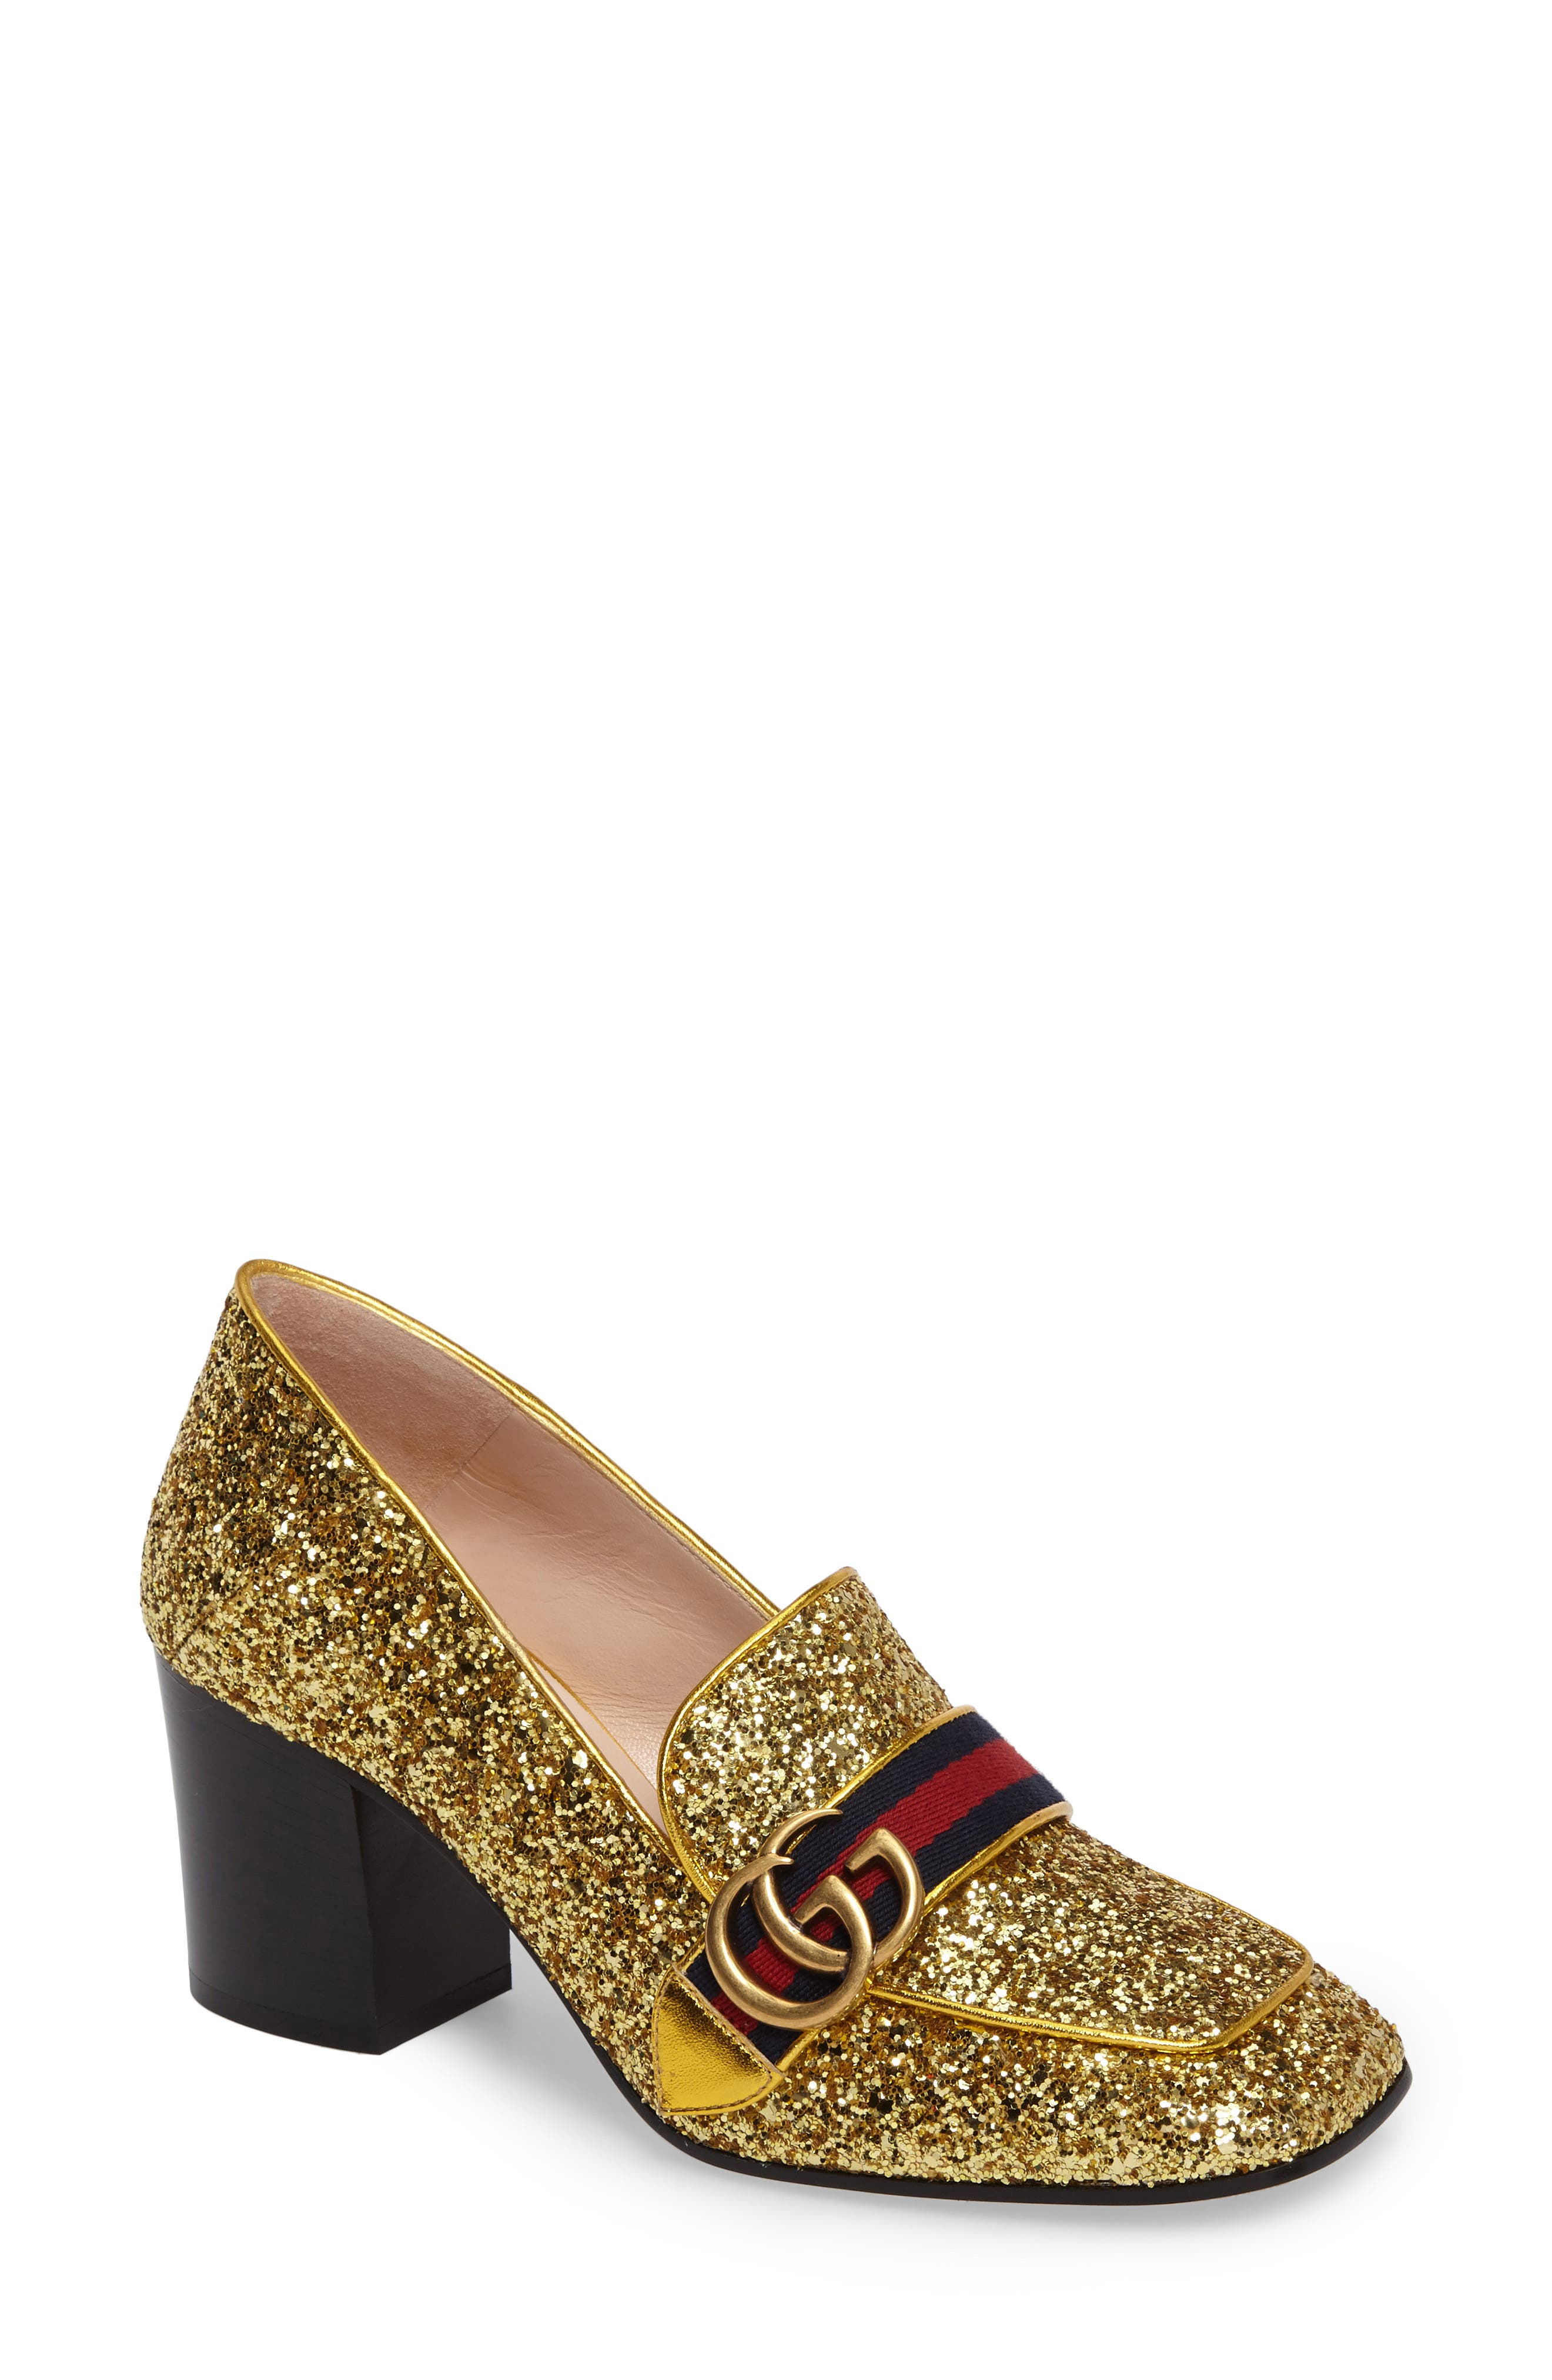 Main Image - Gucci Glitter Peyton Loafer Pump (Women)